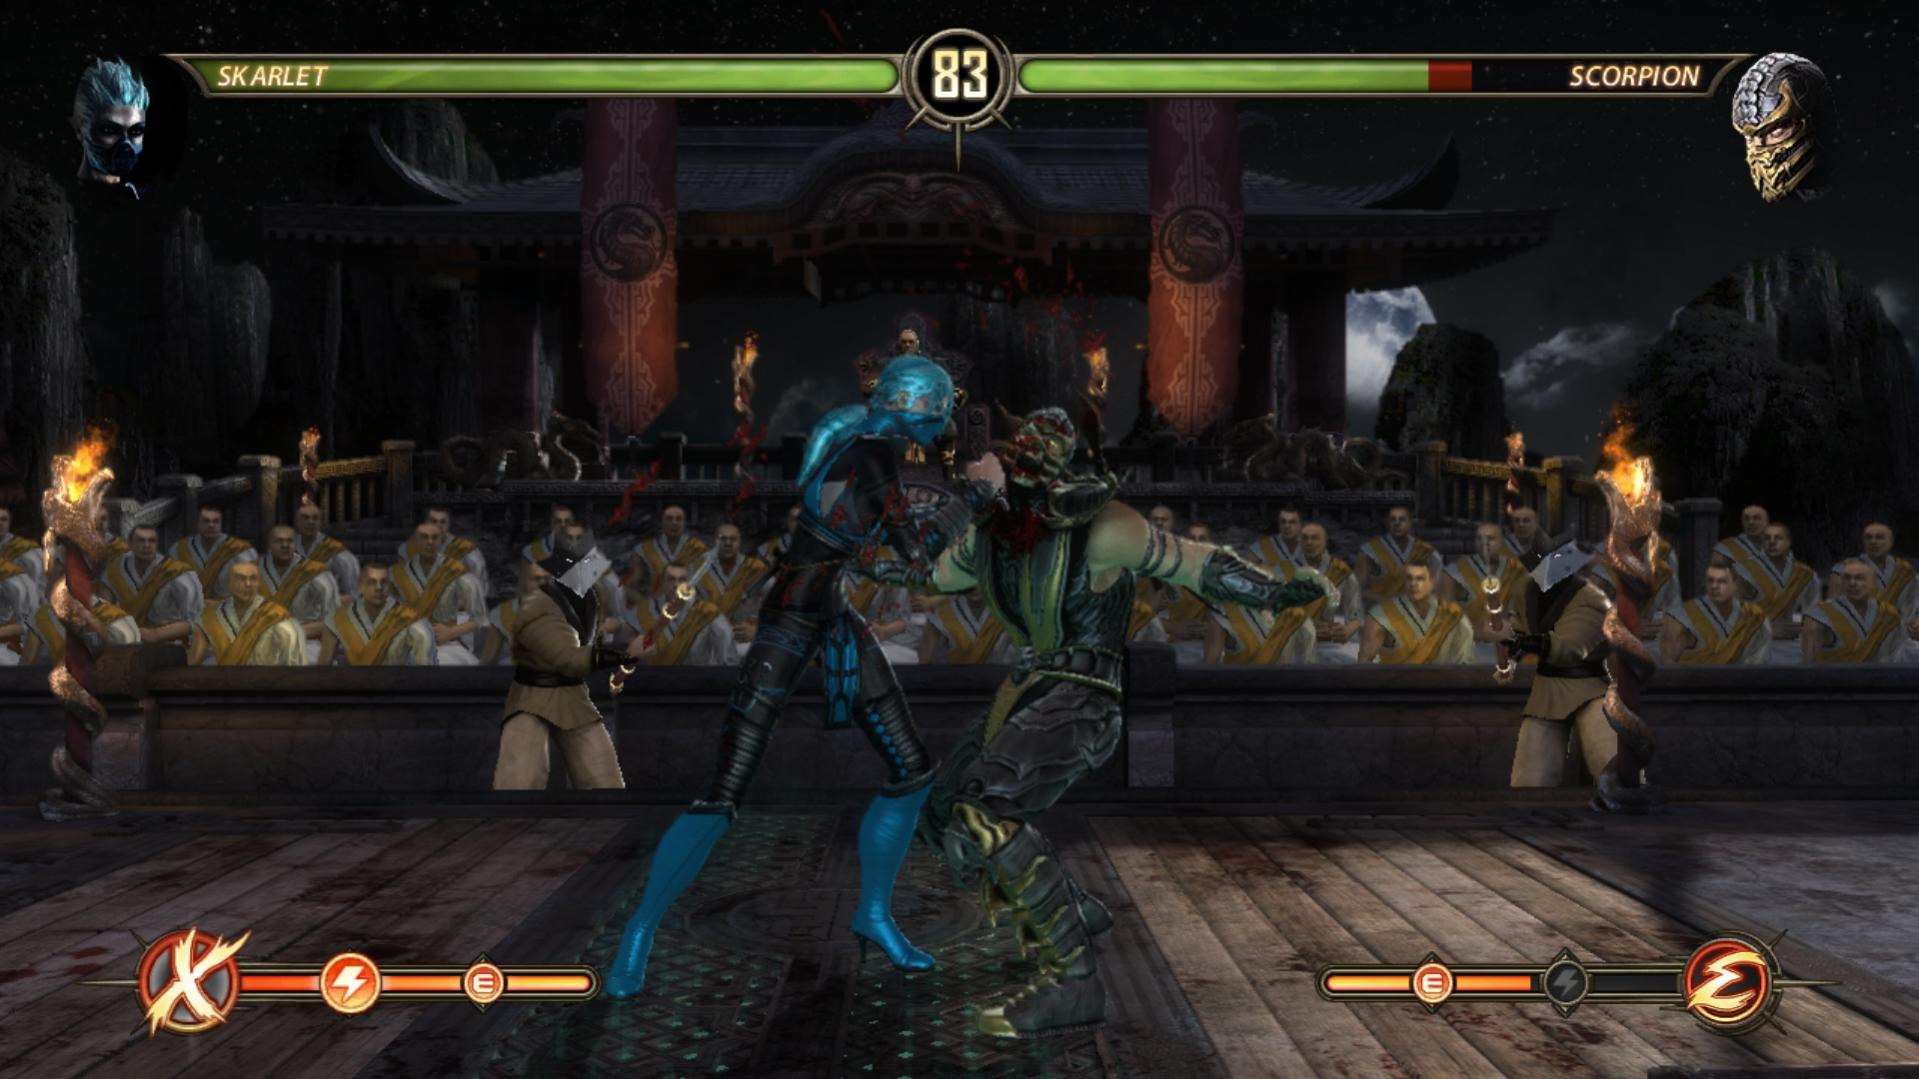 Mortal kombat 9 nudepatch pornos videos